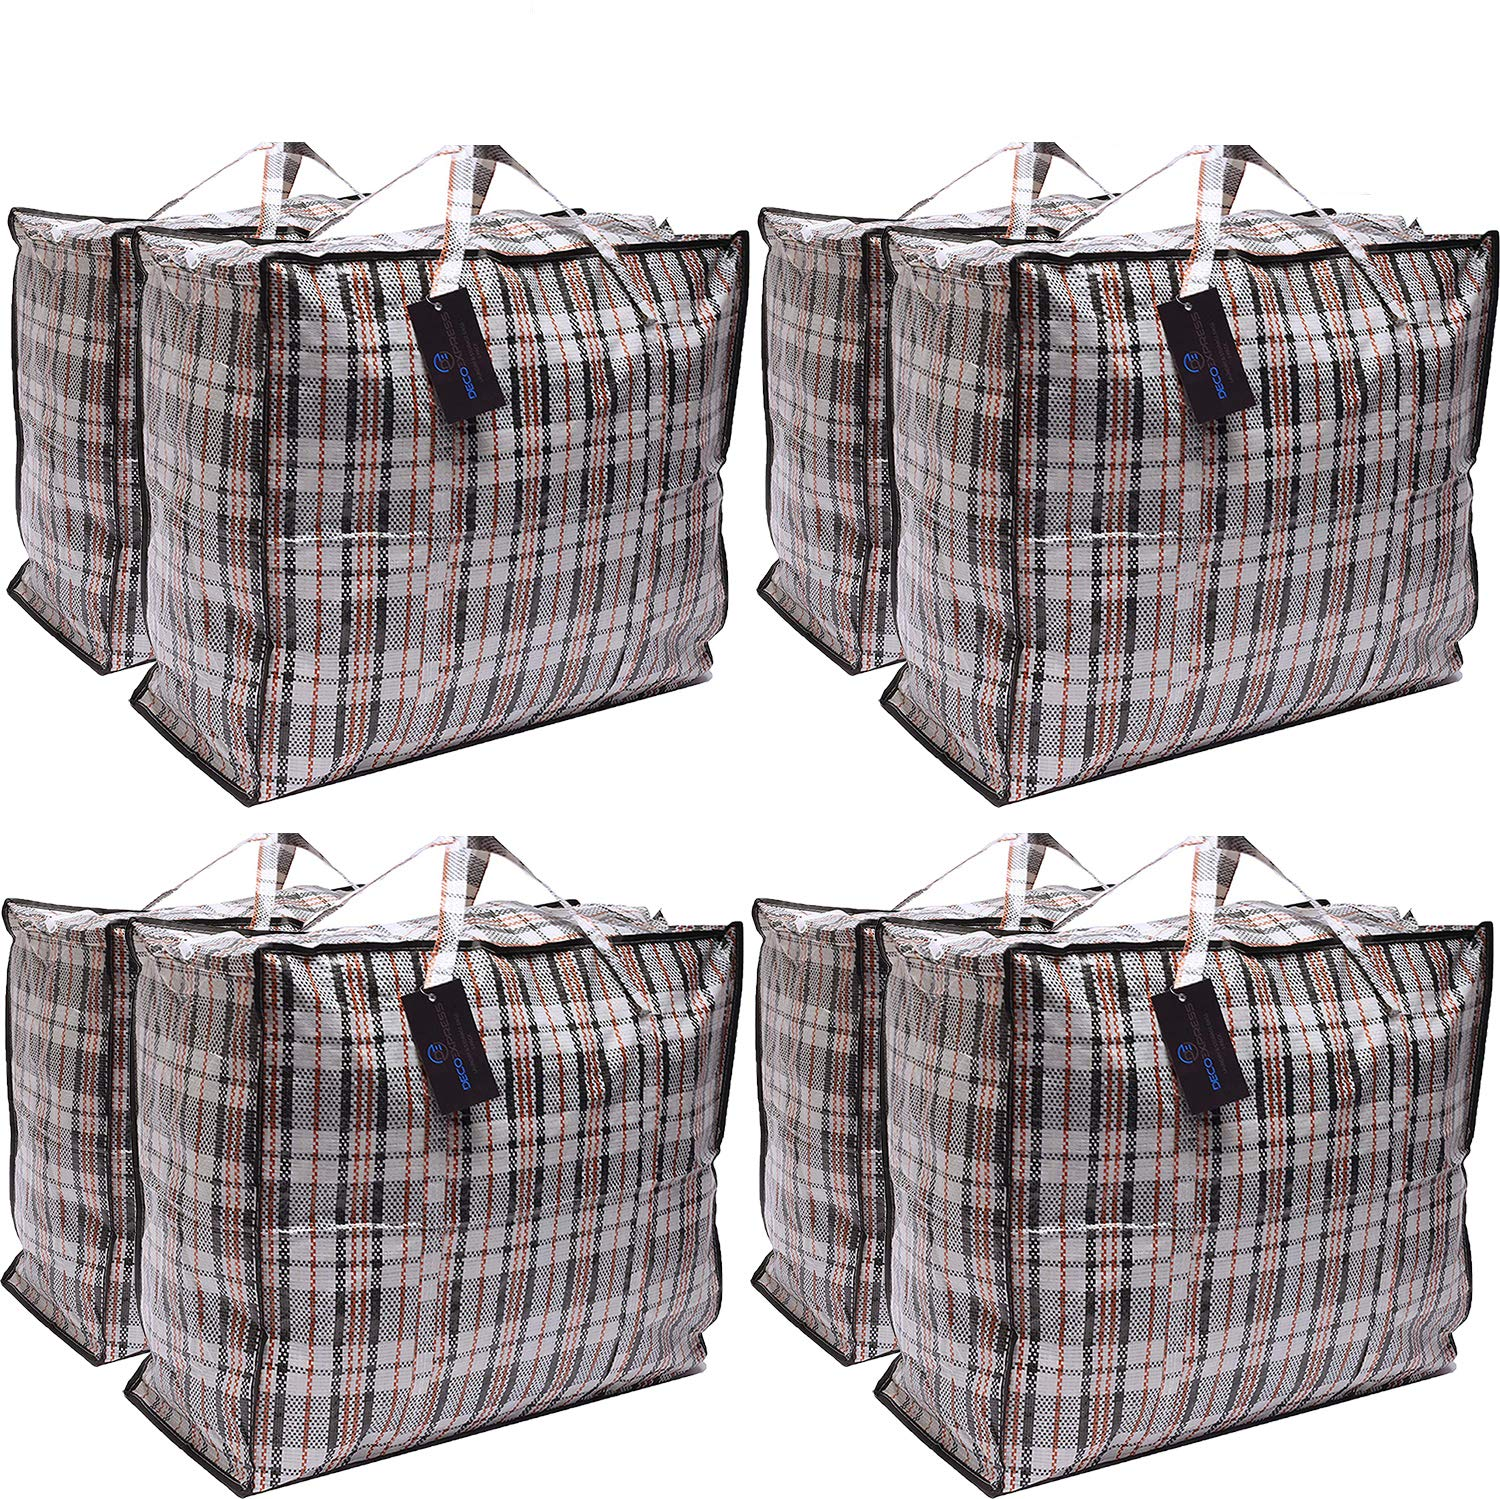 Pack of 10 XX- Large STRONG Storage Laundry Shopping Bags – XXL Moving Bags with Zipper & Handles Checkered - Reusable Store Zip Bag